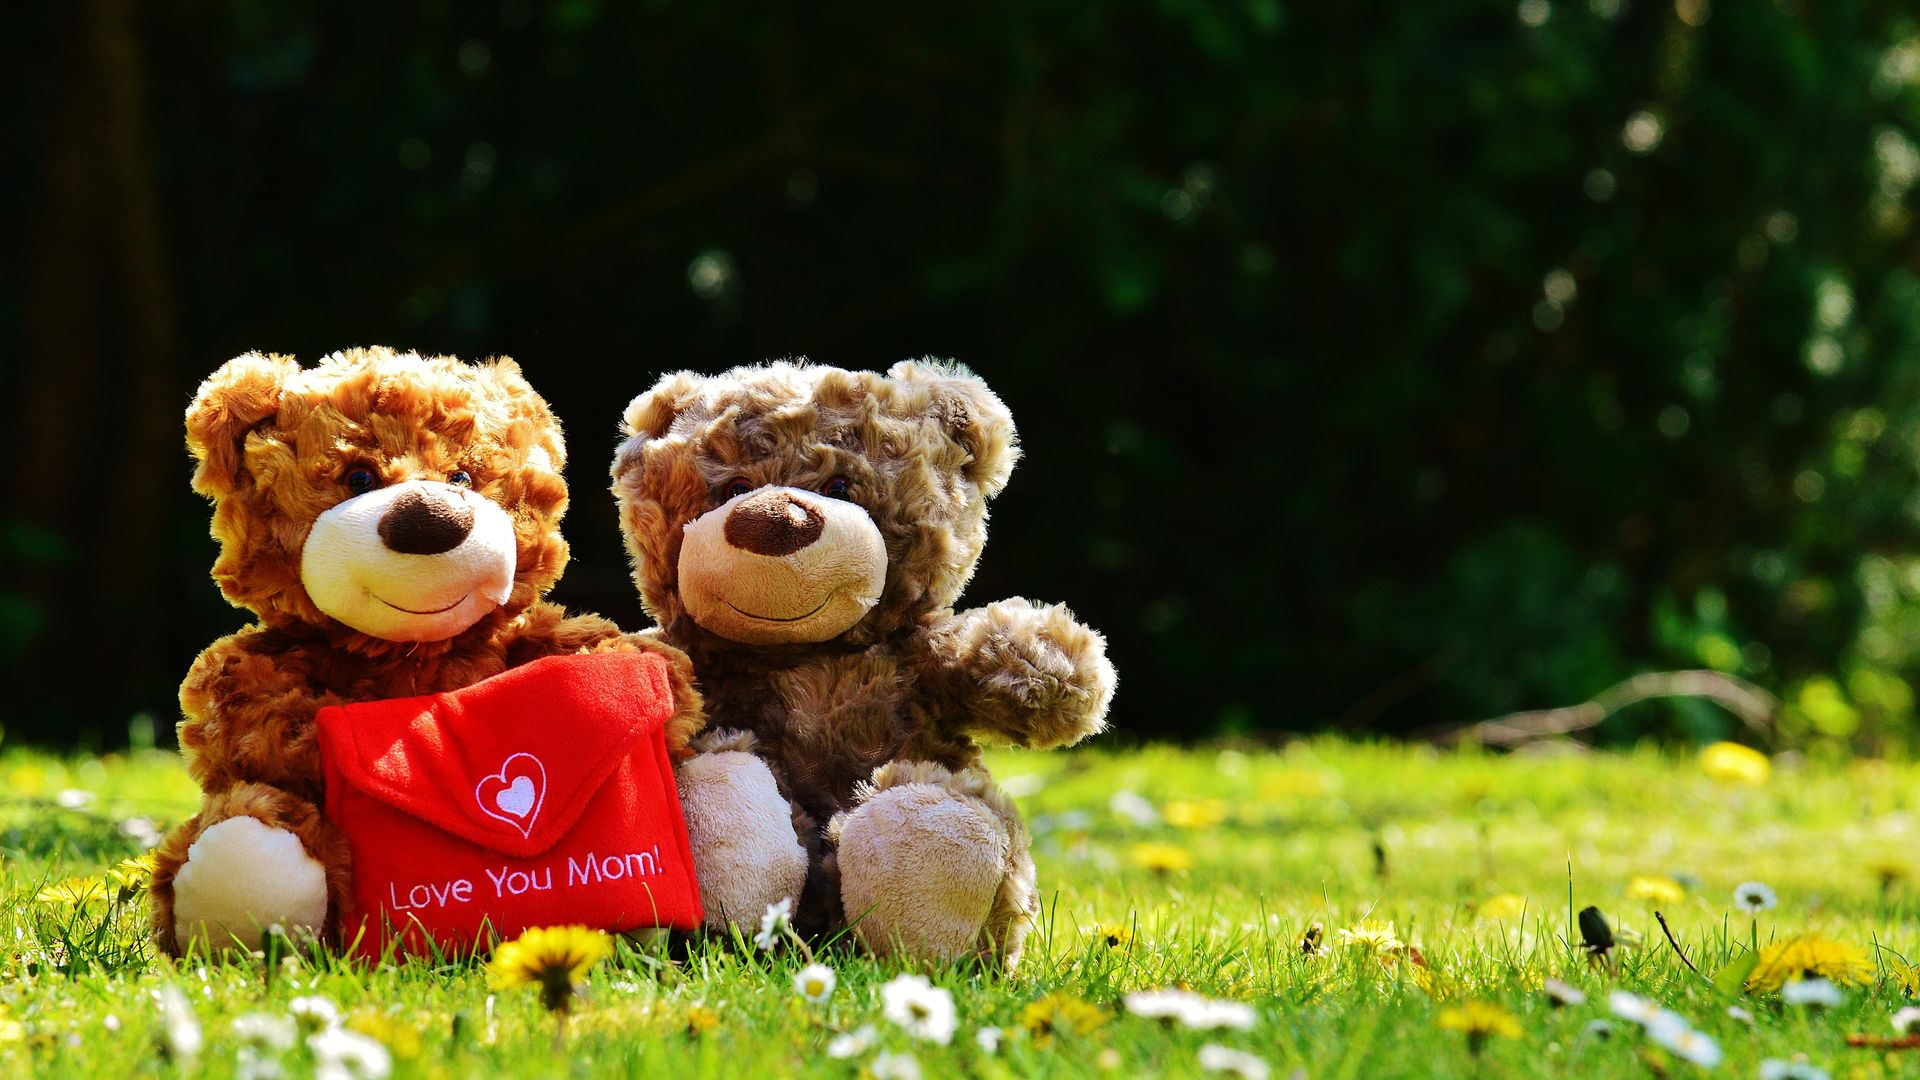 loved one,teddy bear,toy,love,teddy,making love,mammy,bear,mum,momma,shimmy,stand,mom,conduct,dear,you